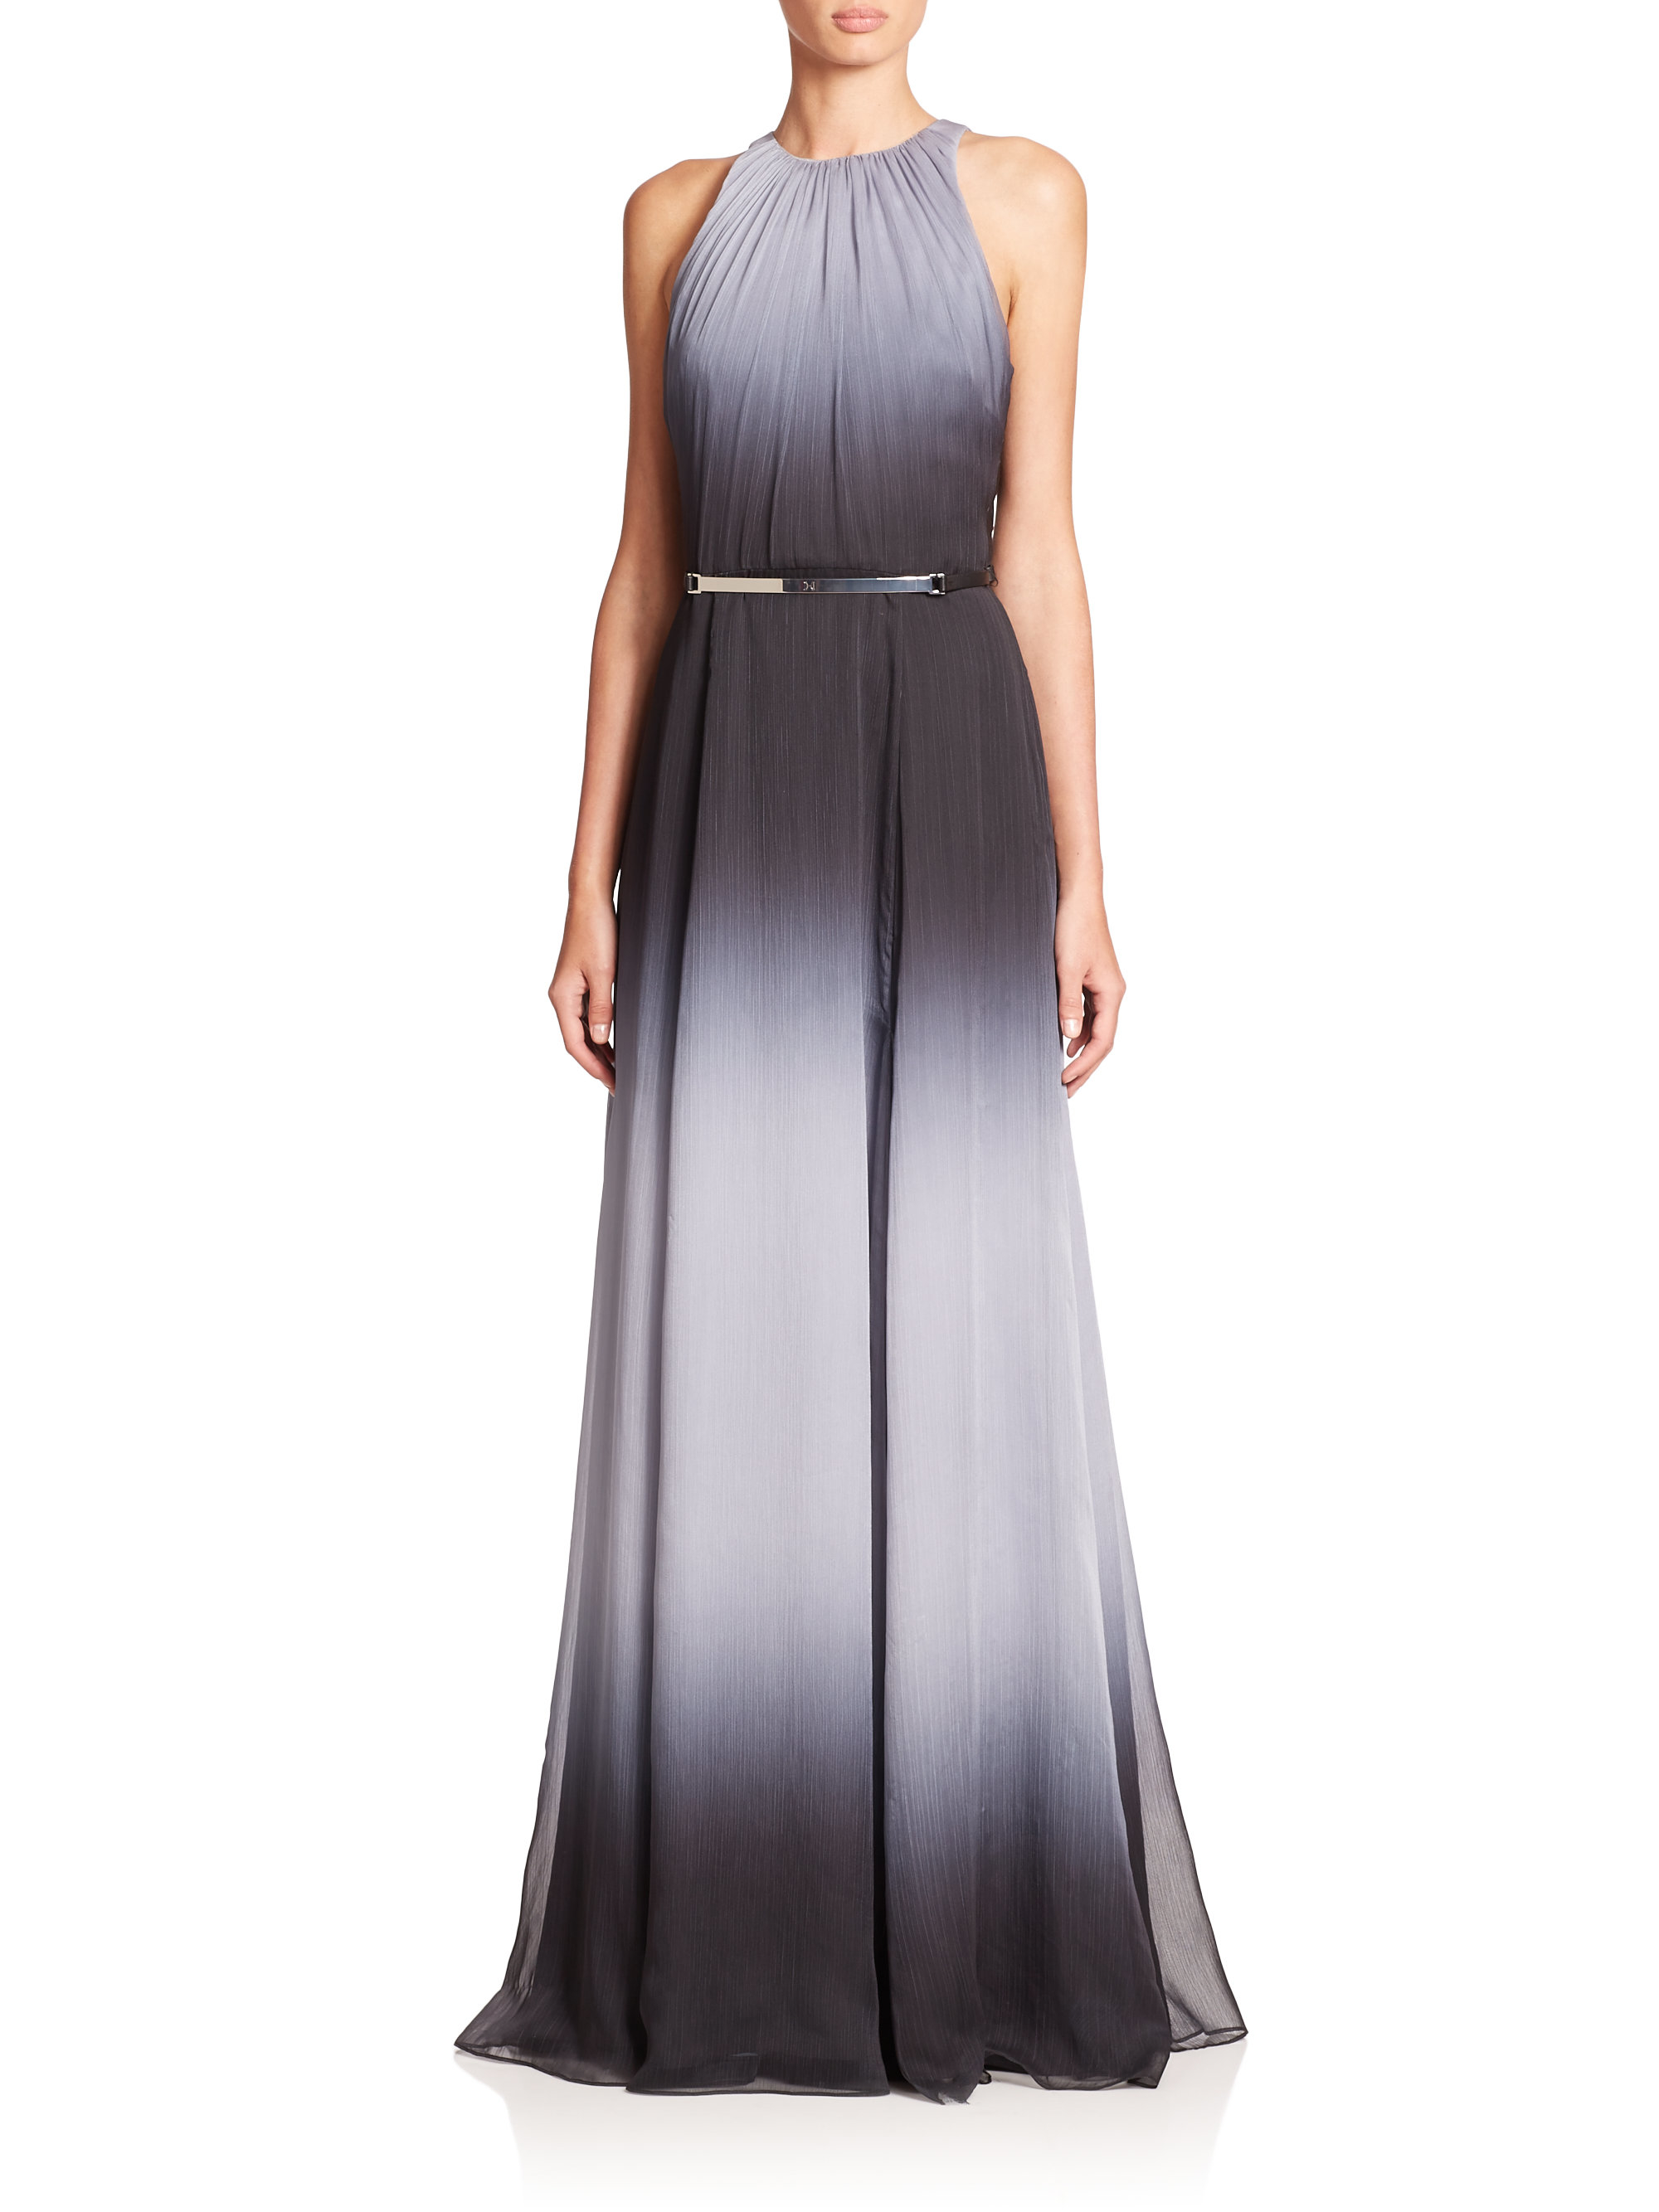 Lyst - Halston Belted Ombré Gown in Black